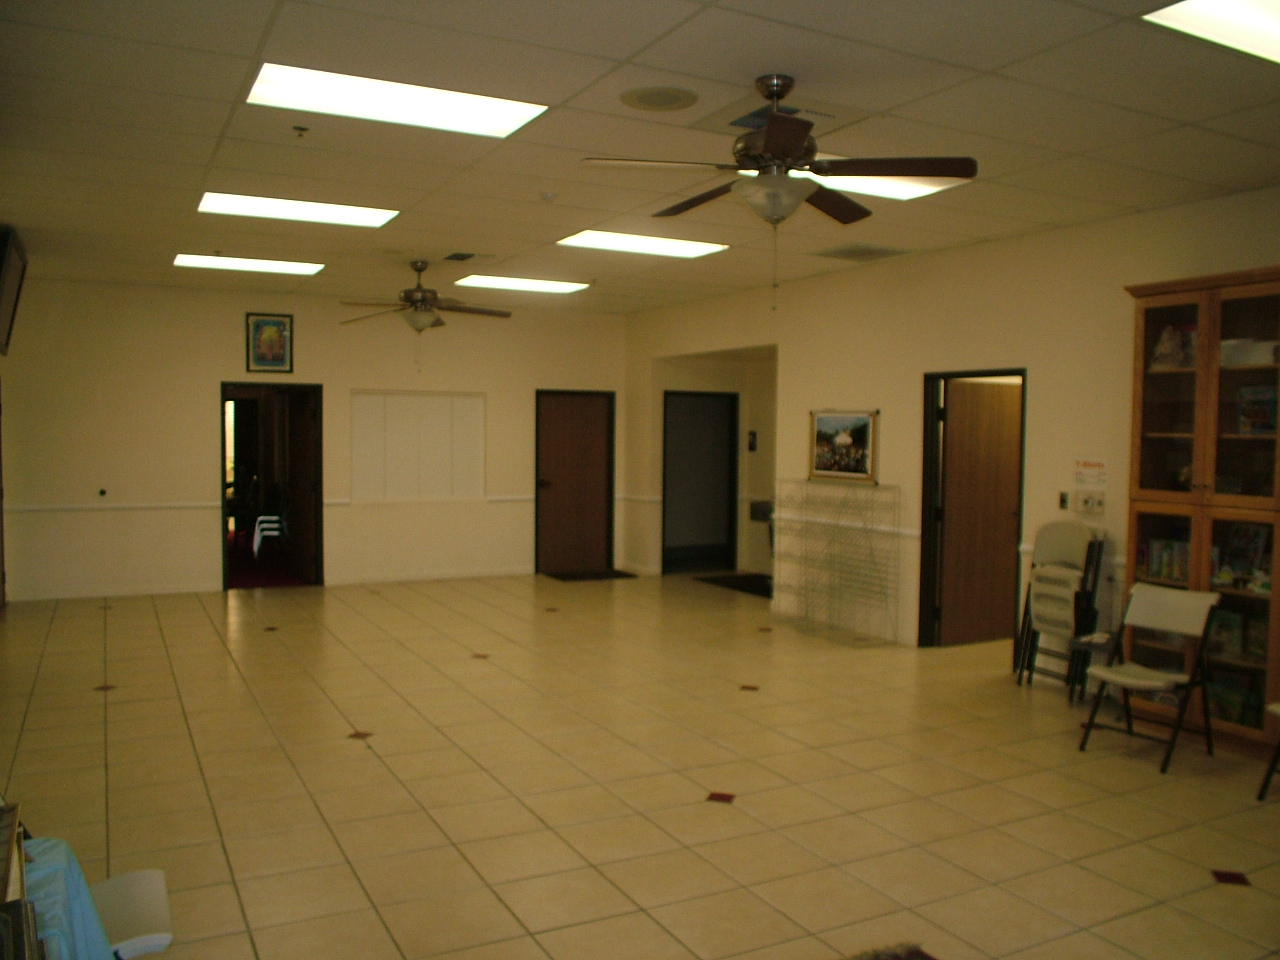 10-21-09websitephotos 022